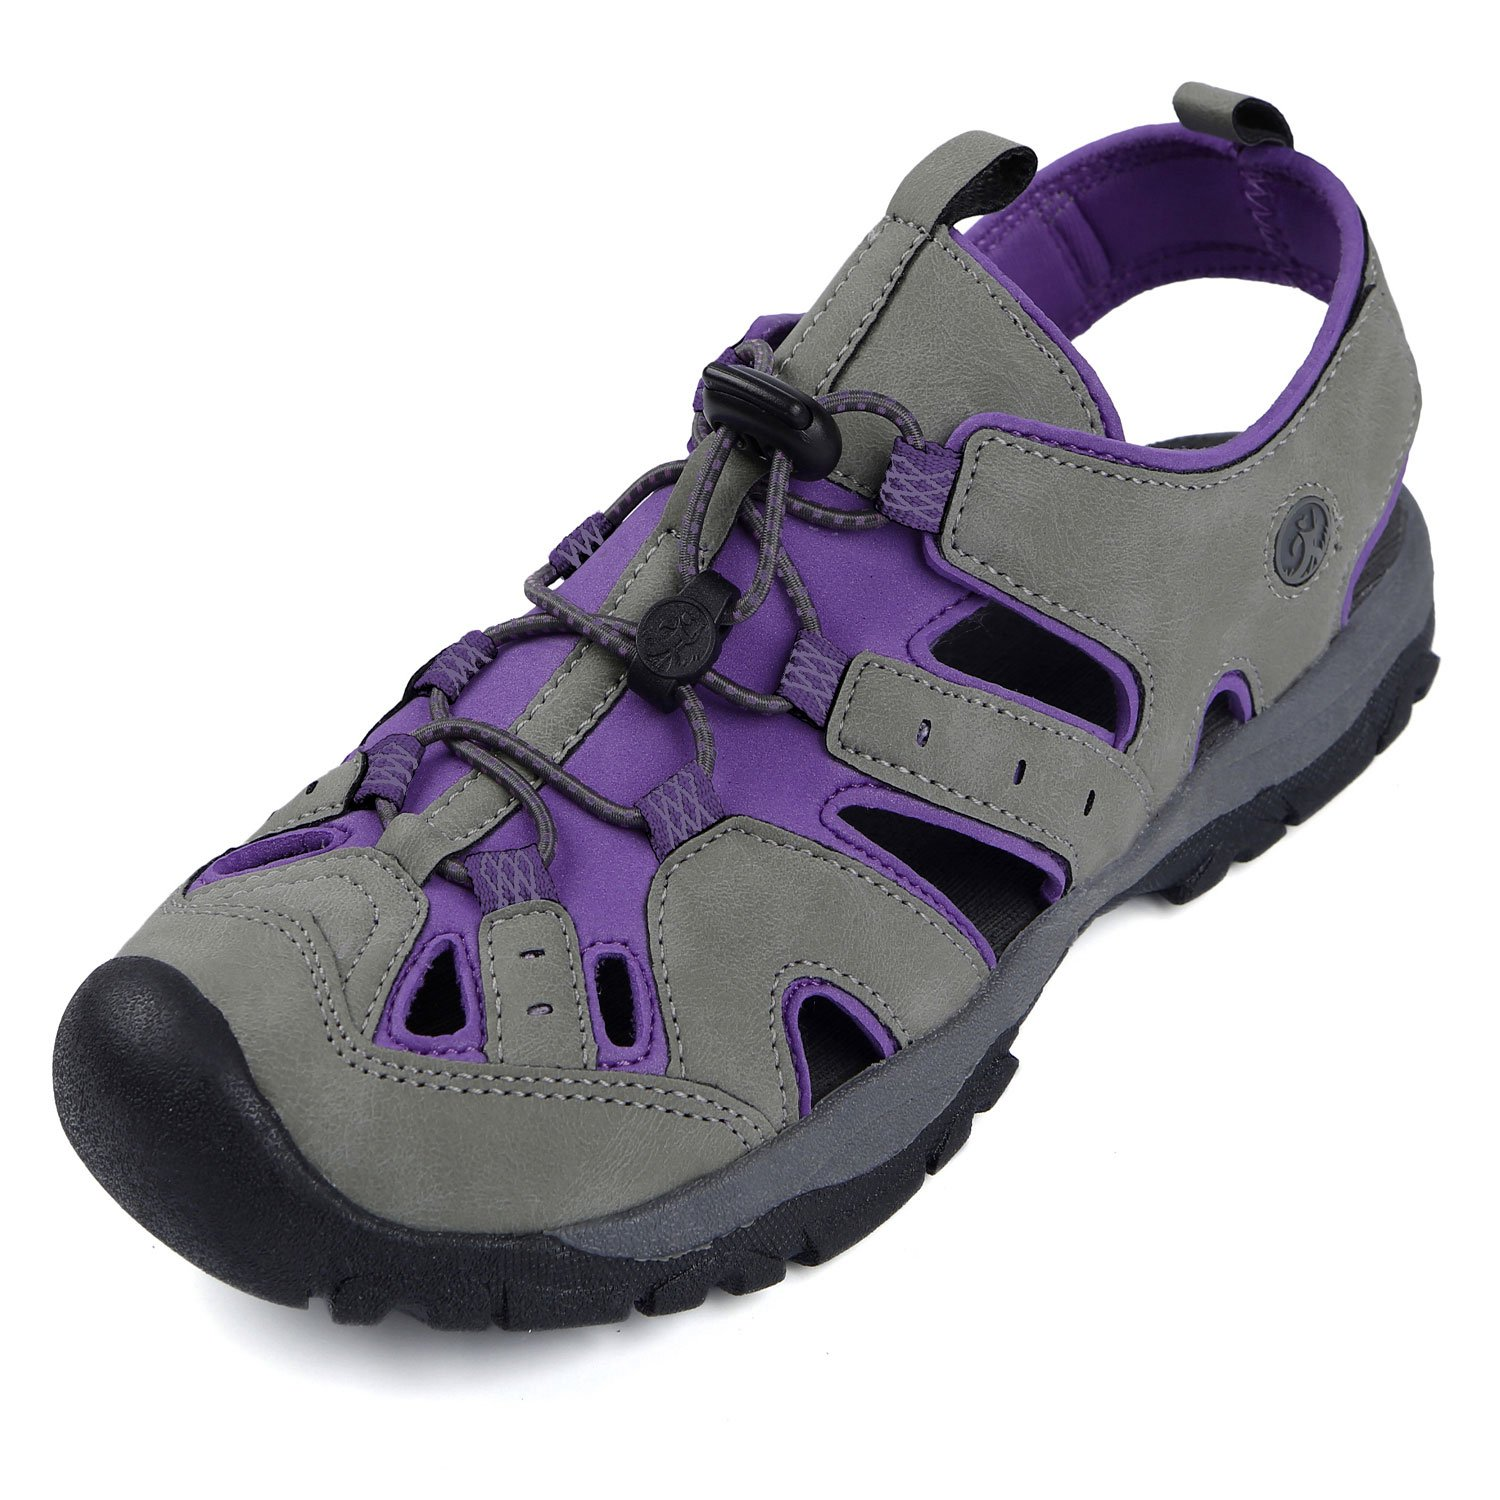 Northside Womens Burke II Sport Athletic Sandal B00E7OOUNS 6 B(M) US|Grey/Purple